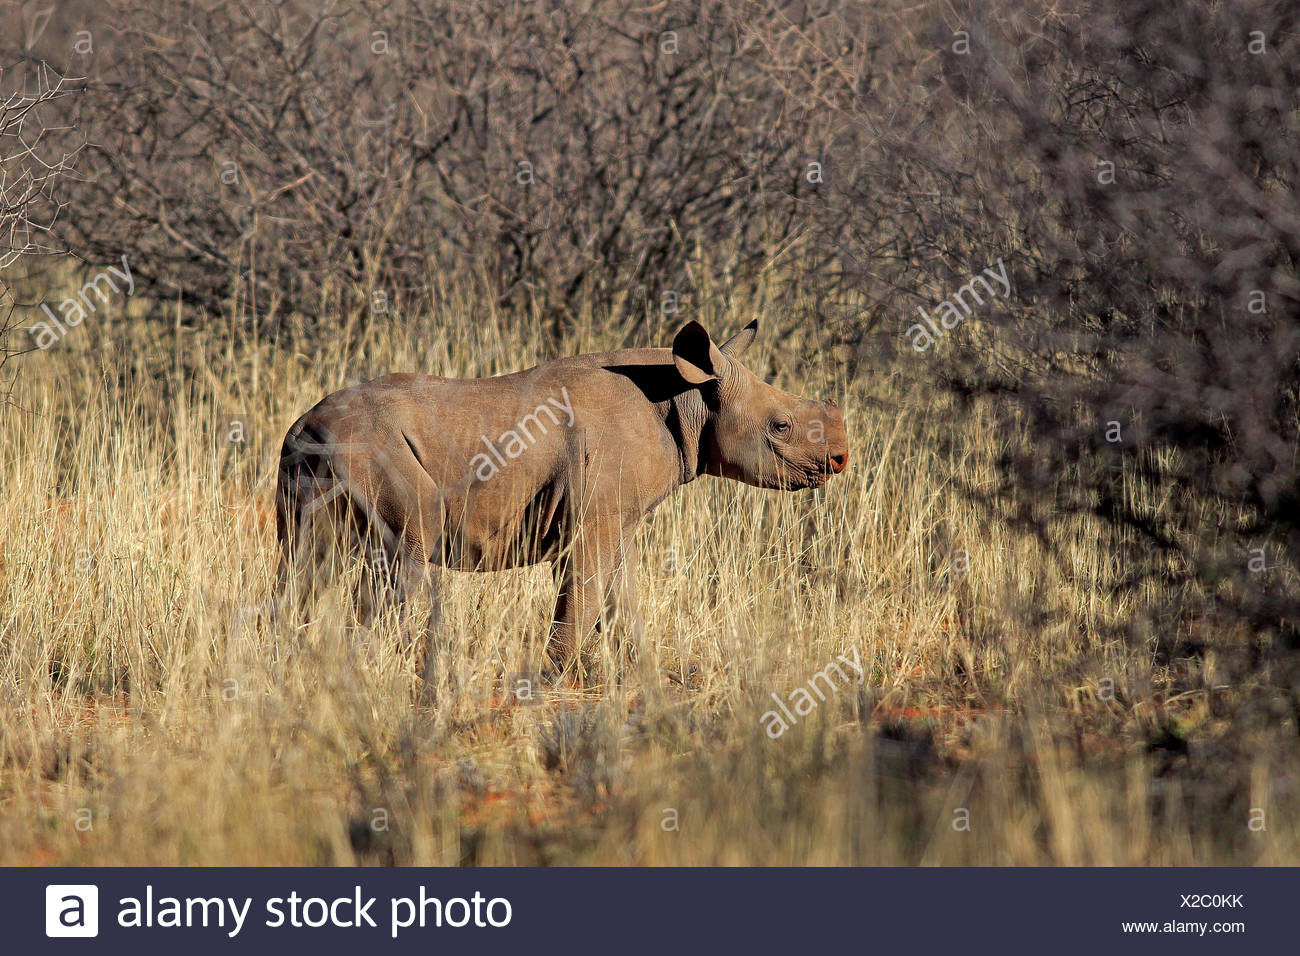 Black Rhinoceros, hook-lipped rhinoceros, young, Tswalu Game Reserve, Kalahari, Northern Cape, South Africa, Africa / (Diceros bicornis) - Stock Image